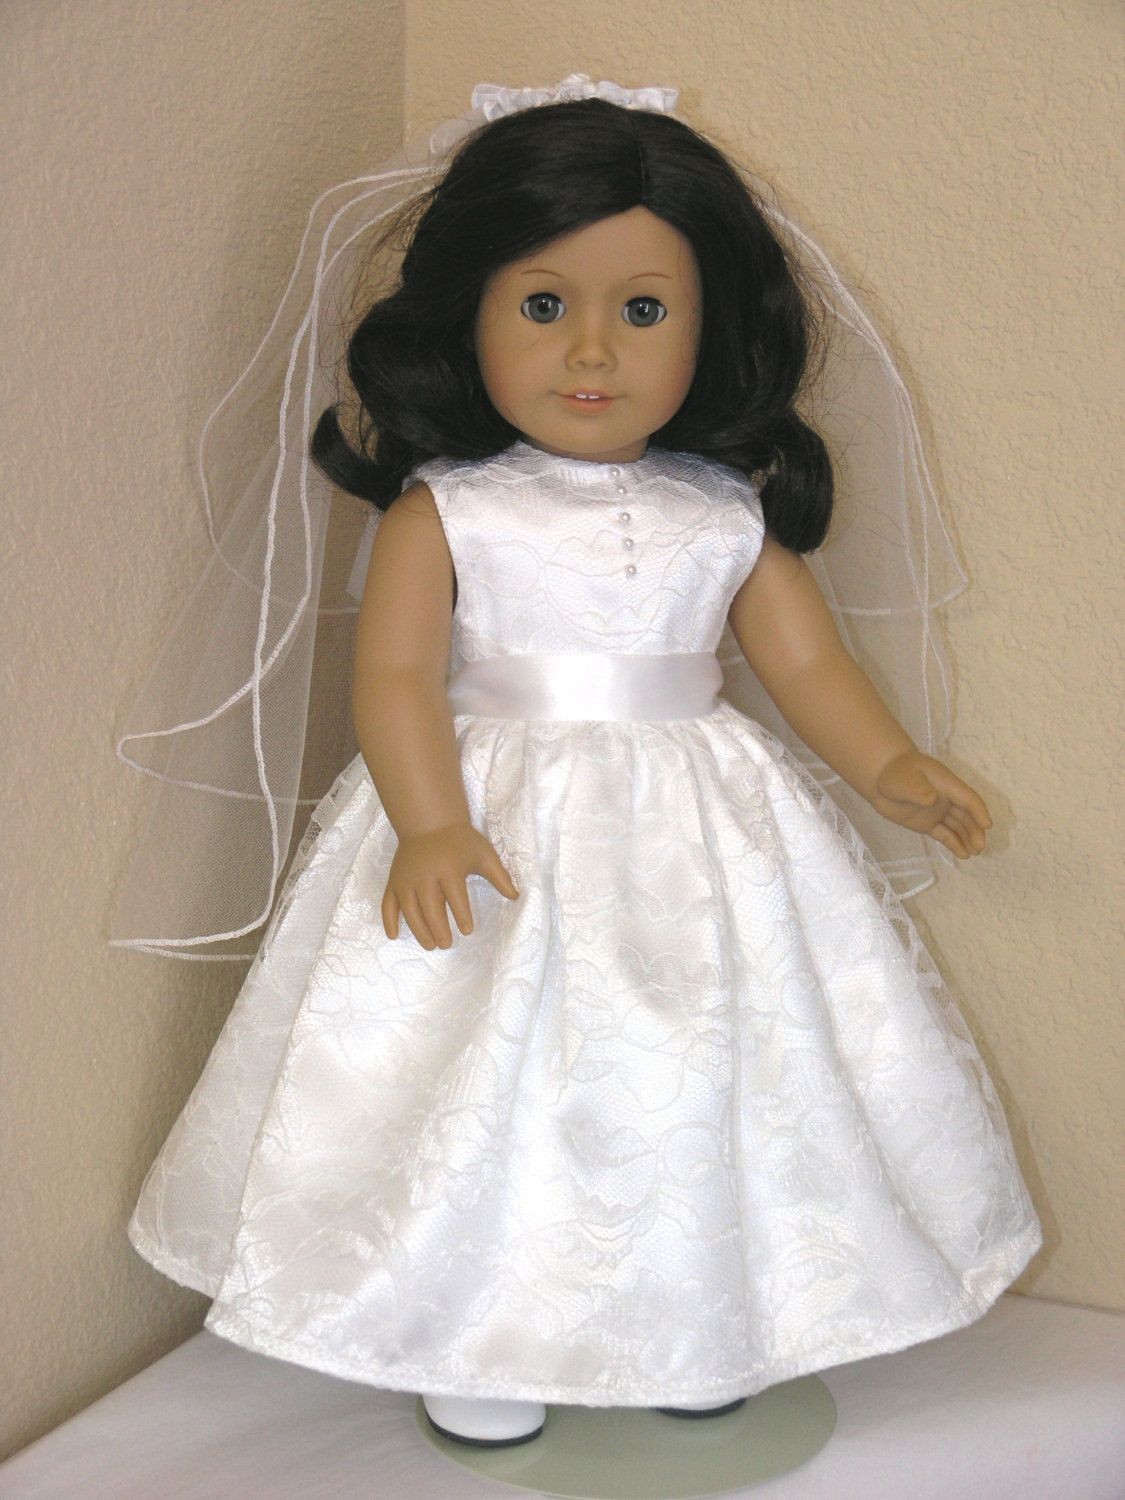 First Communion 18 inch American Girl Doll Dress, Pantalettes, Veil ...